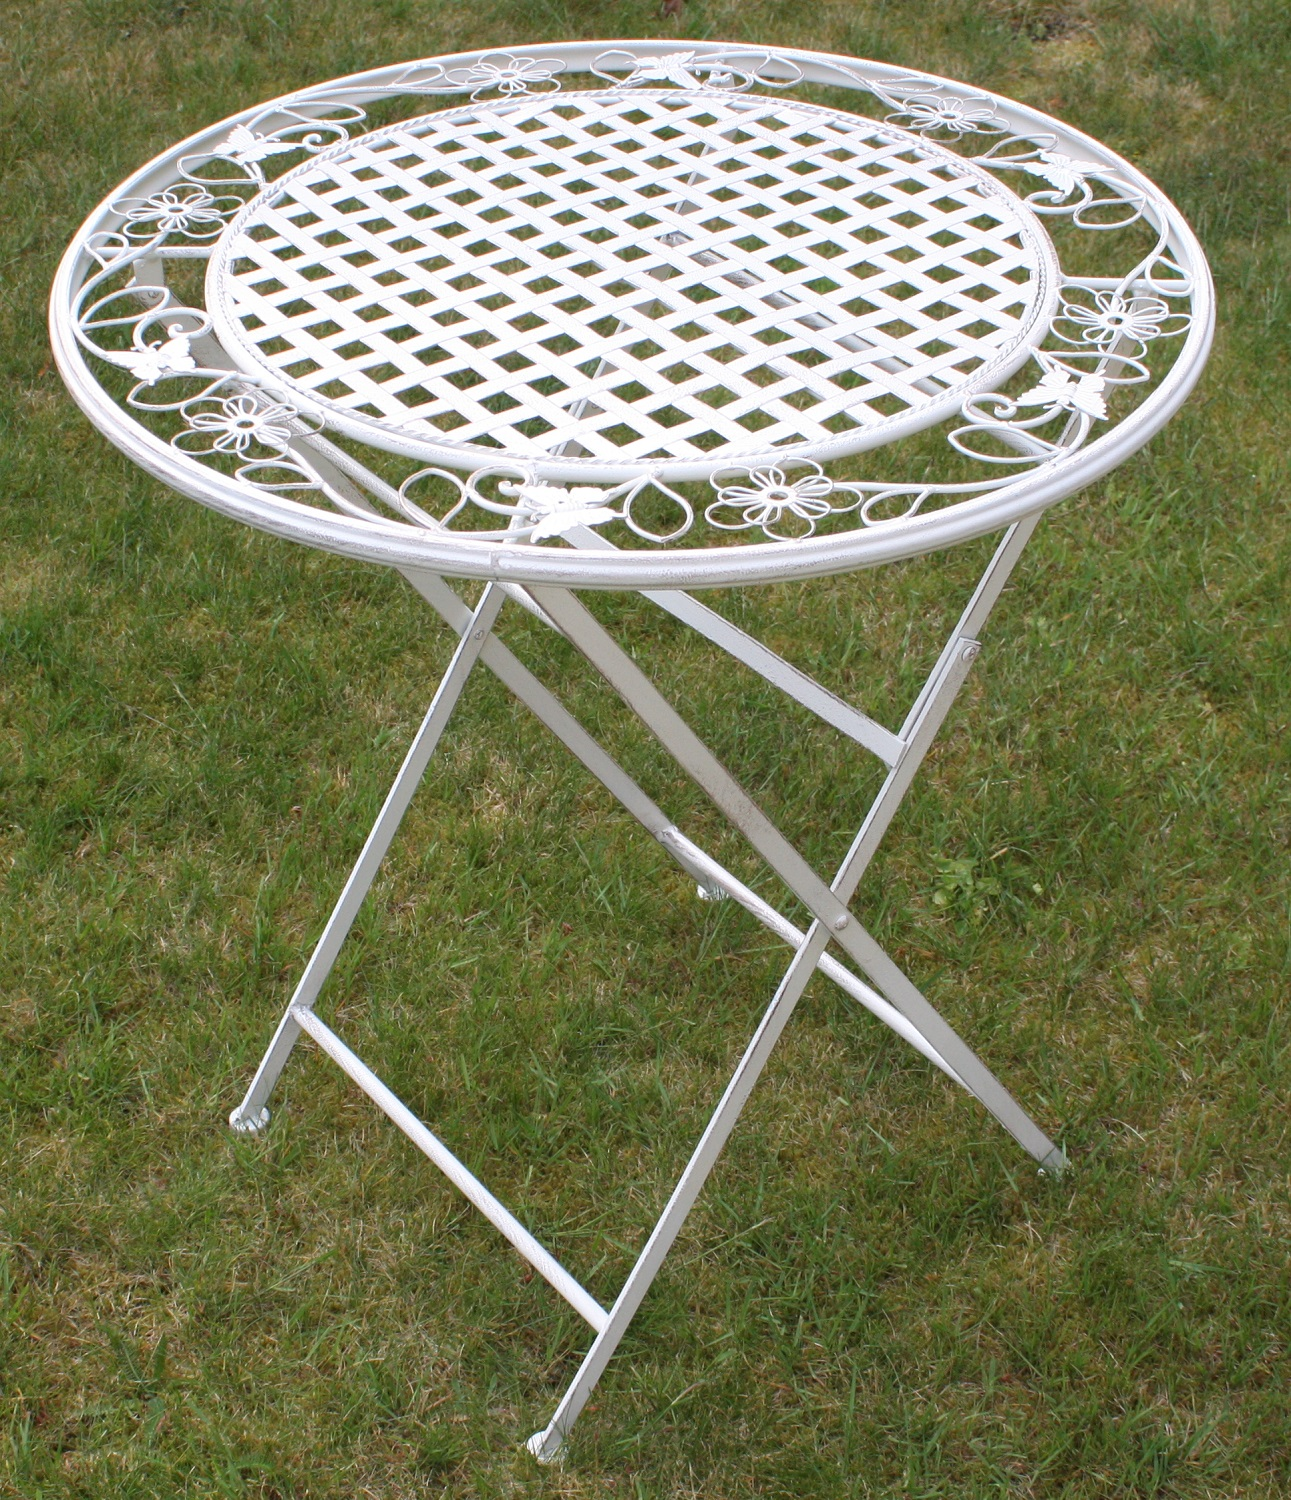 Maribelle round folding outdoor garden patio dining table for White patio table